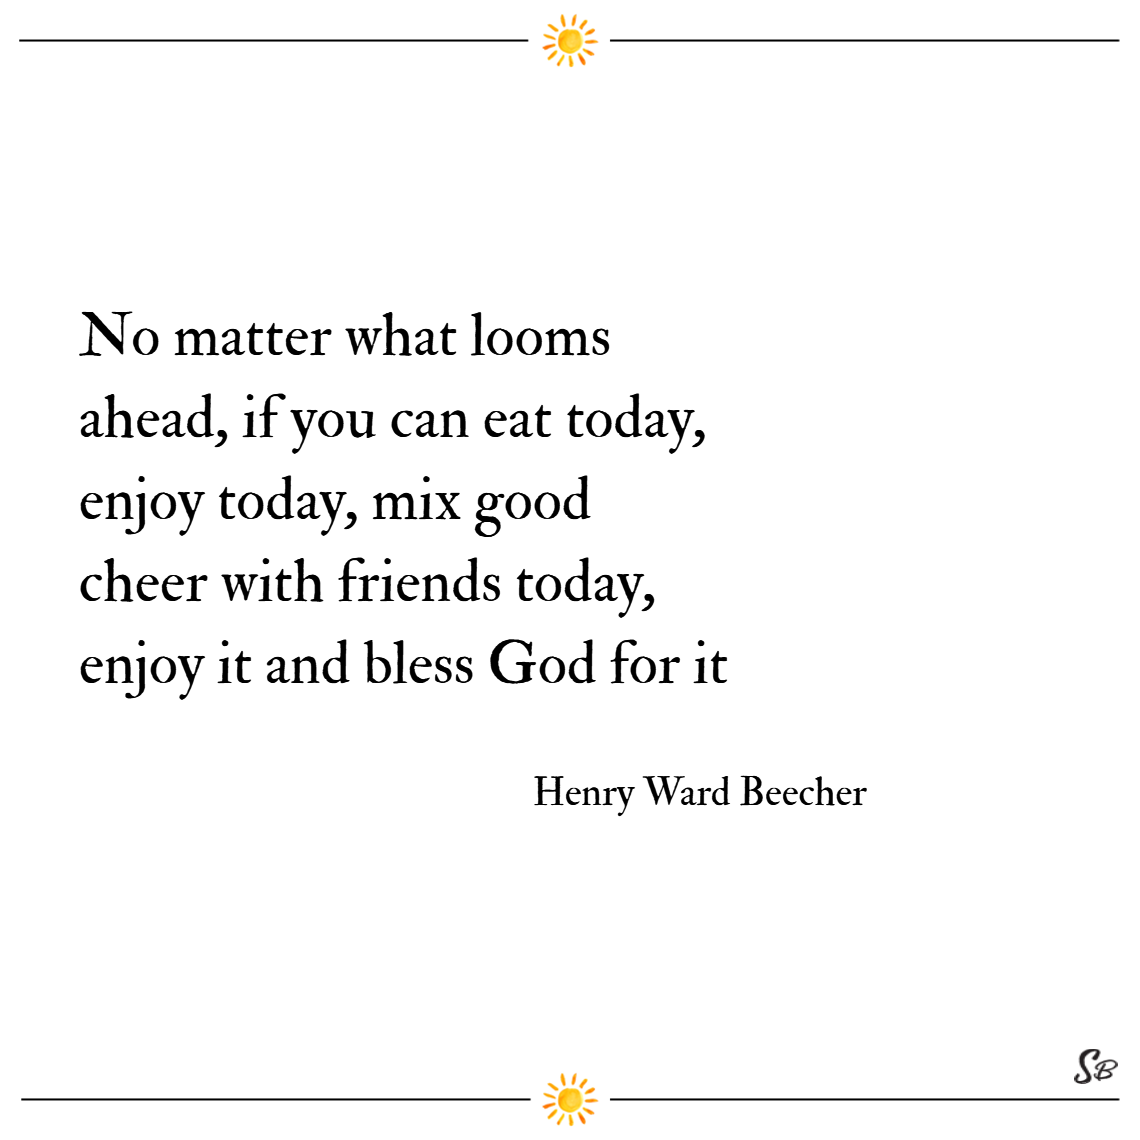 No matter what looms ahead, if you can eat today, enjoy today, mix good cheer with friends today, enjoy it and bless god for it. – henry ward beecher